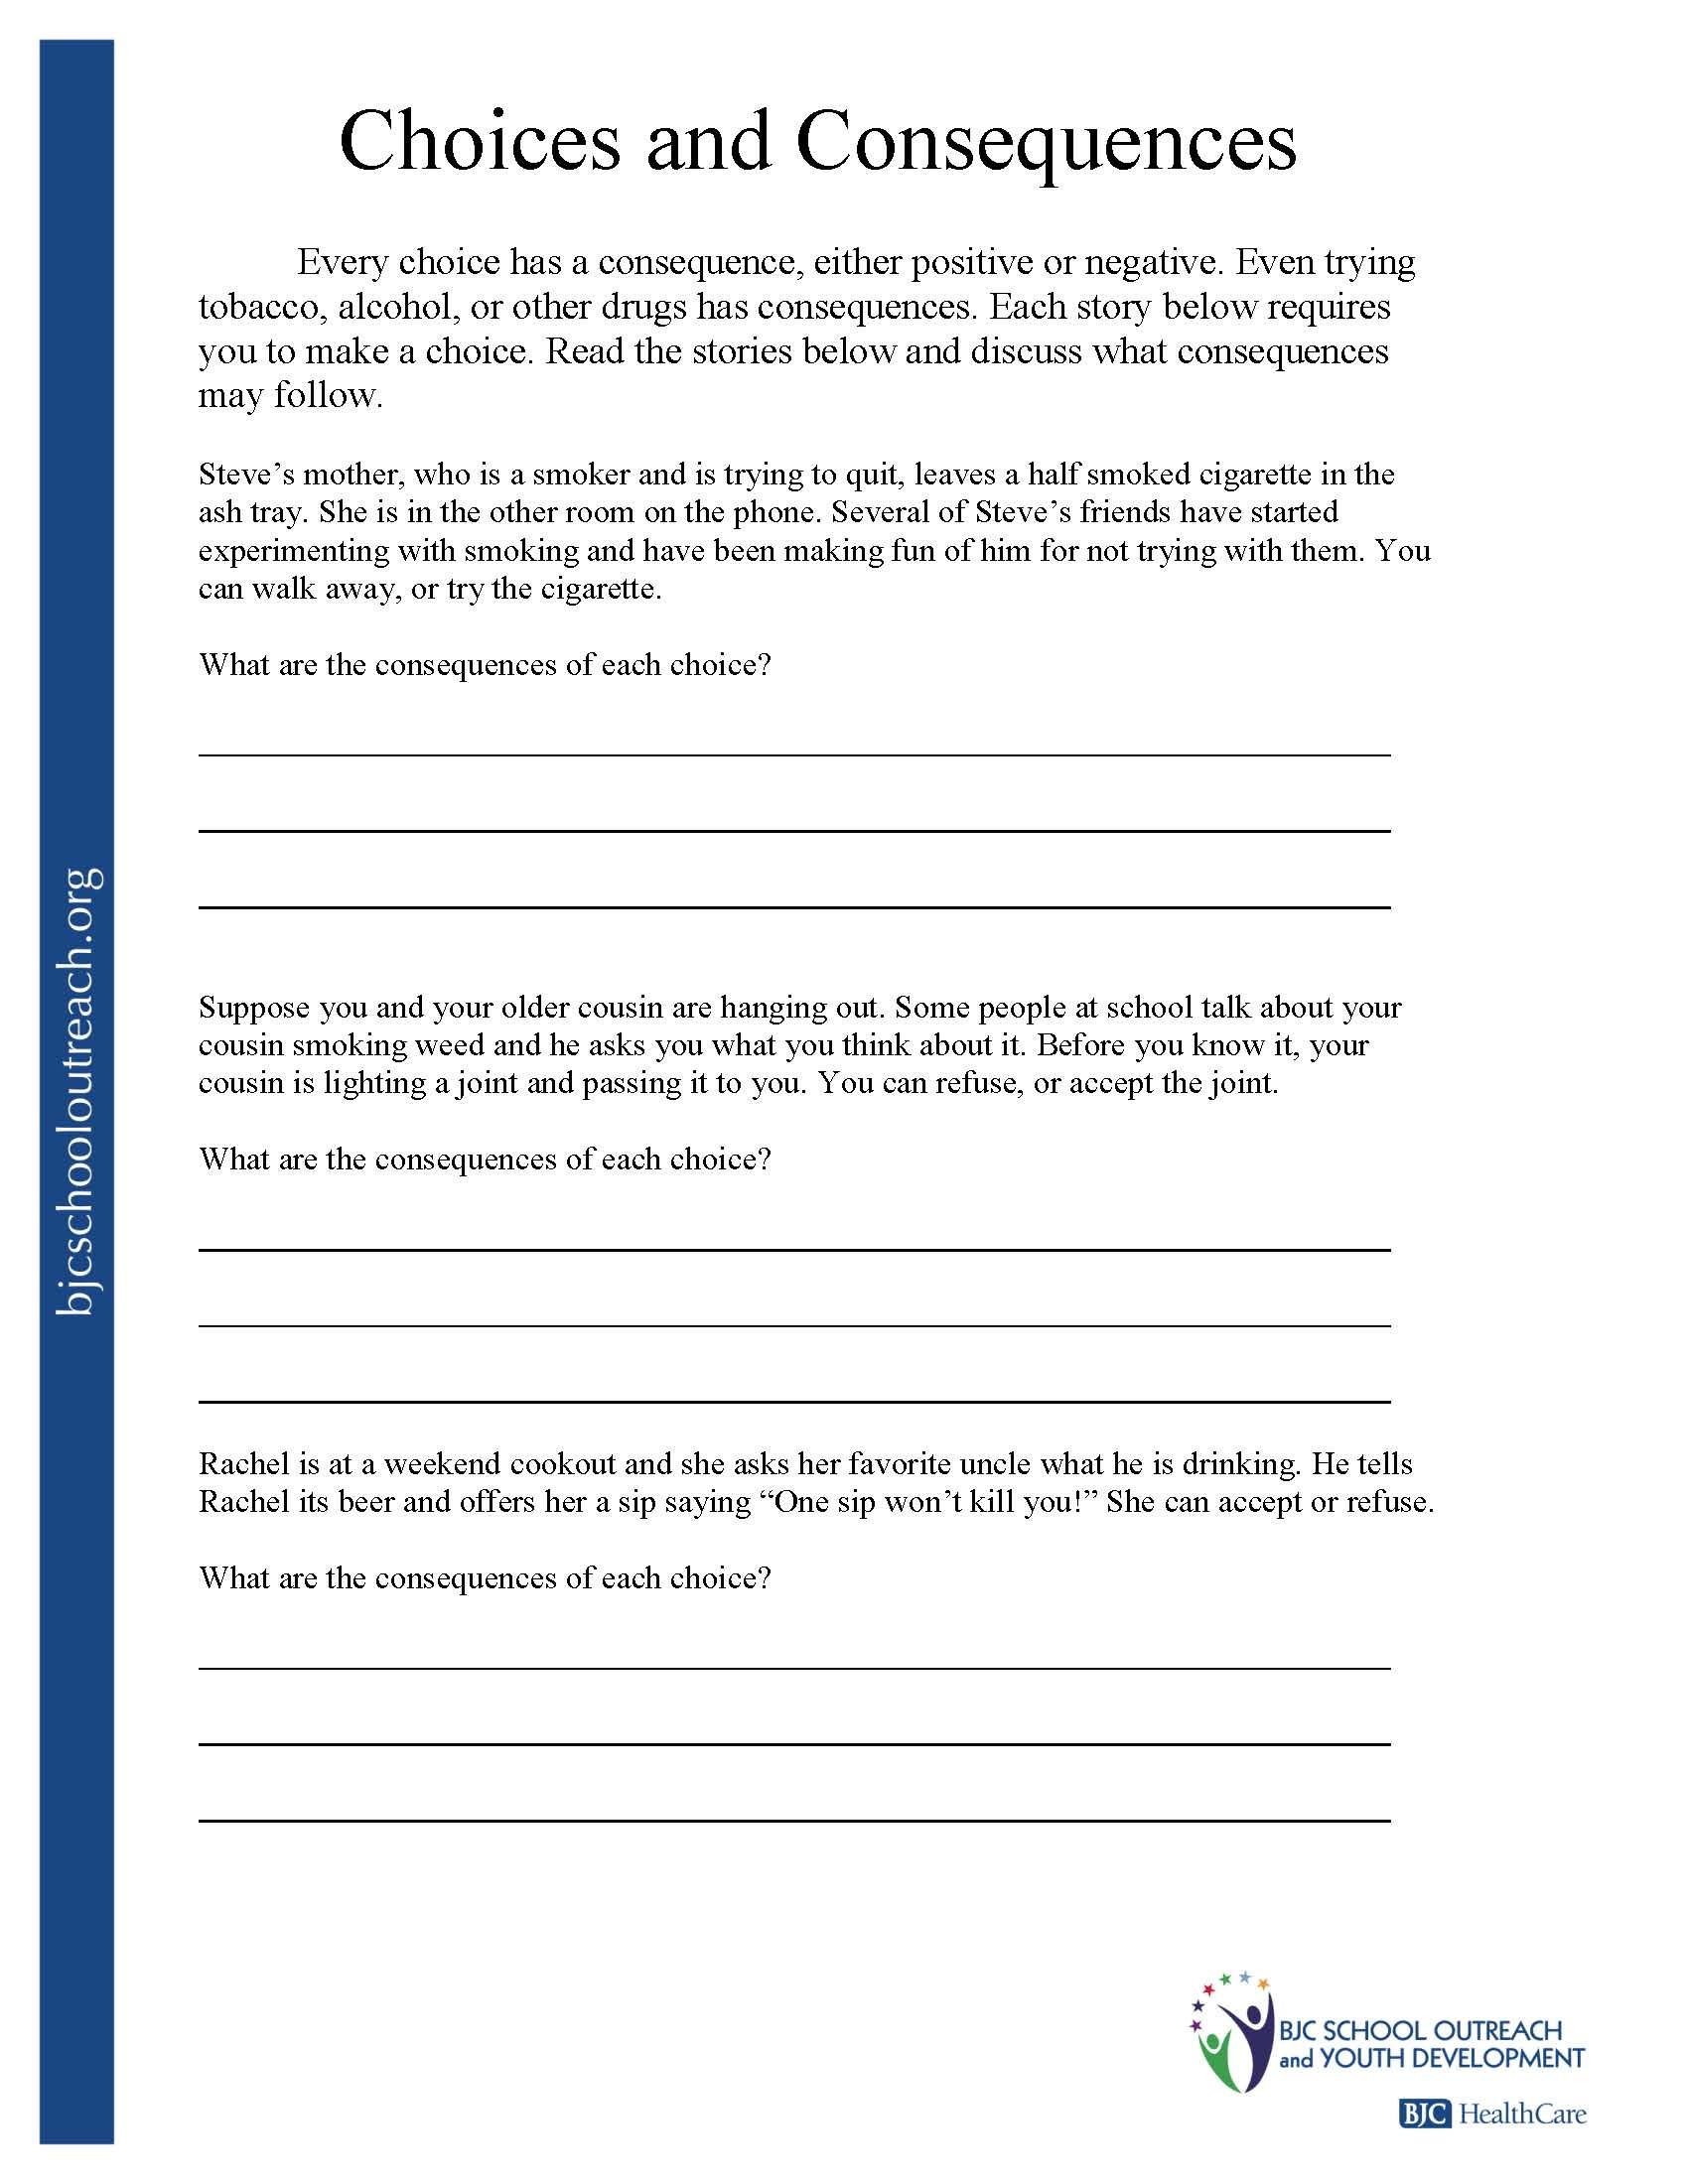 hight resolution of making the right choices worksheets - Google Search   Life skills lessons